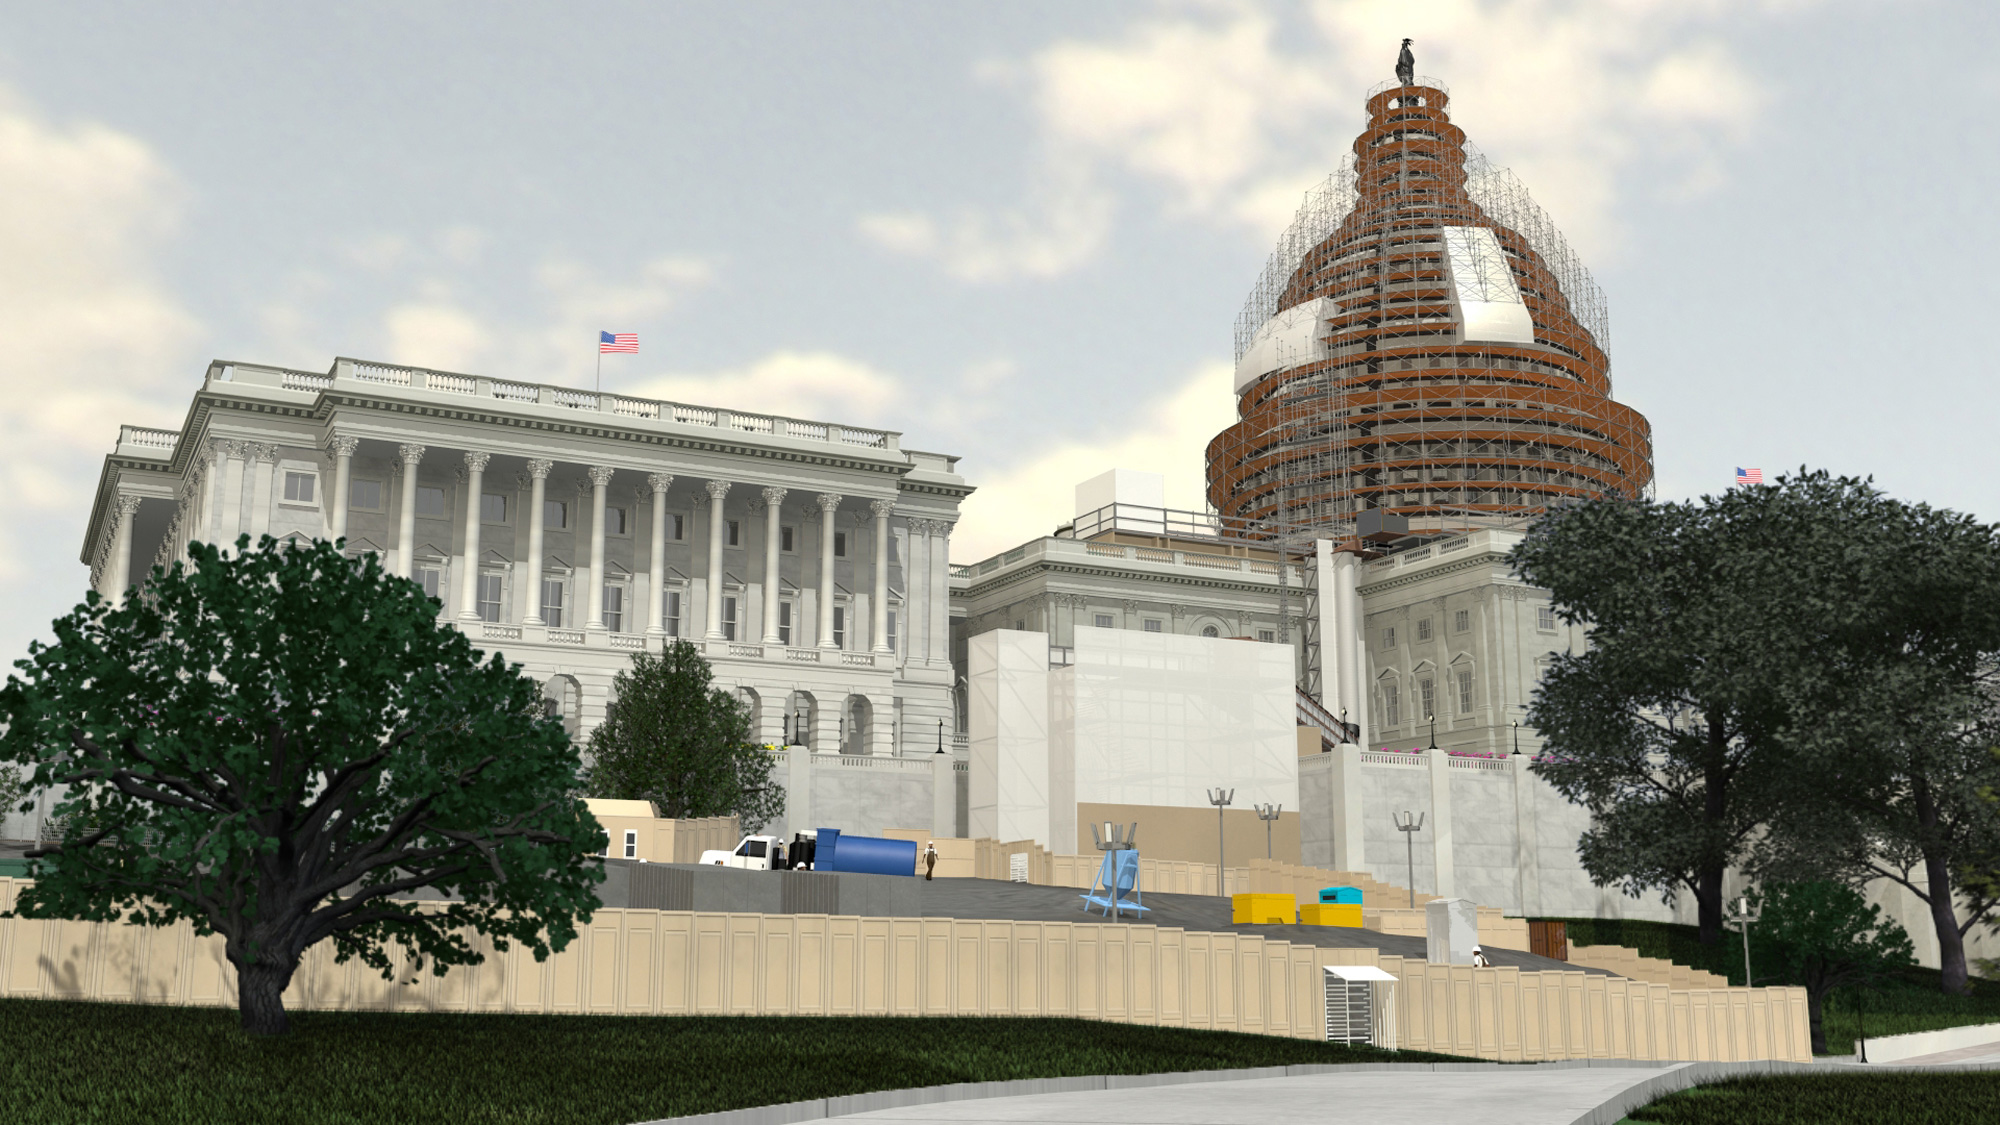 Rendering of the Dome Restoration Project